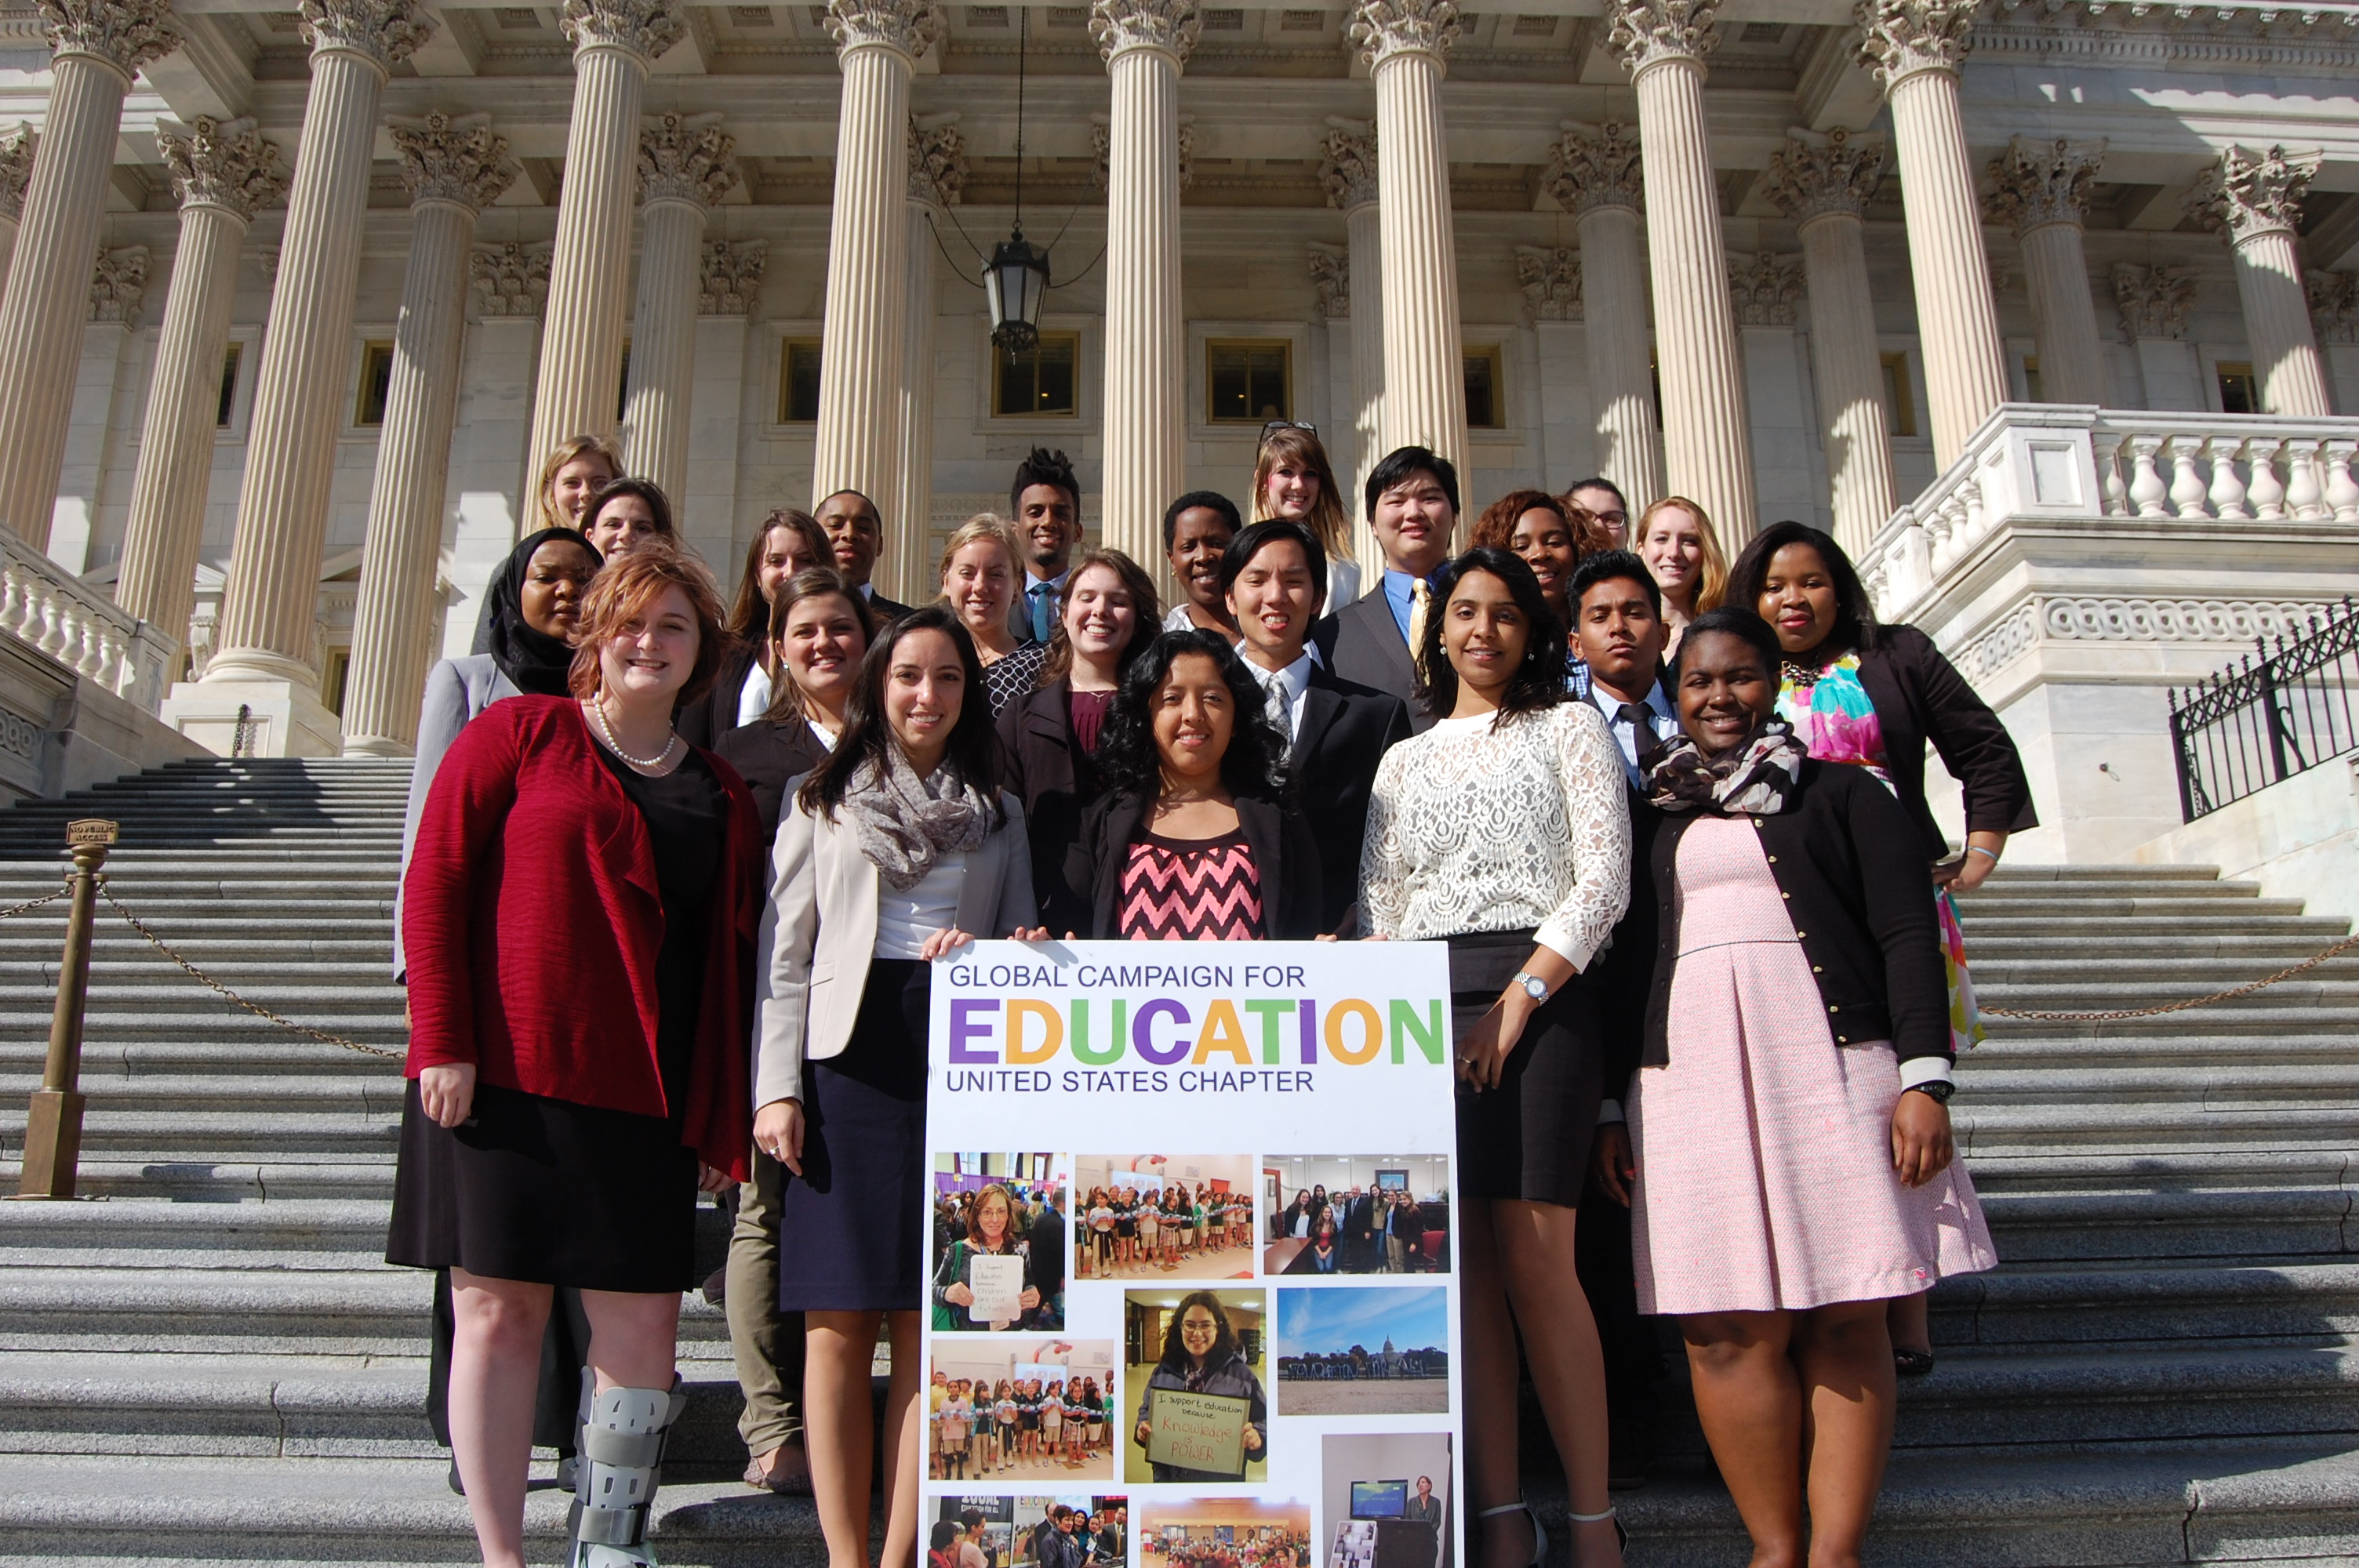 Photo taken by GCE-US shows a group of youth leaders posing with a global education sign on Capitol Hill.